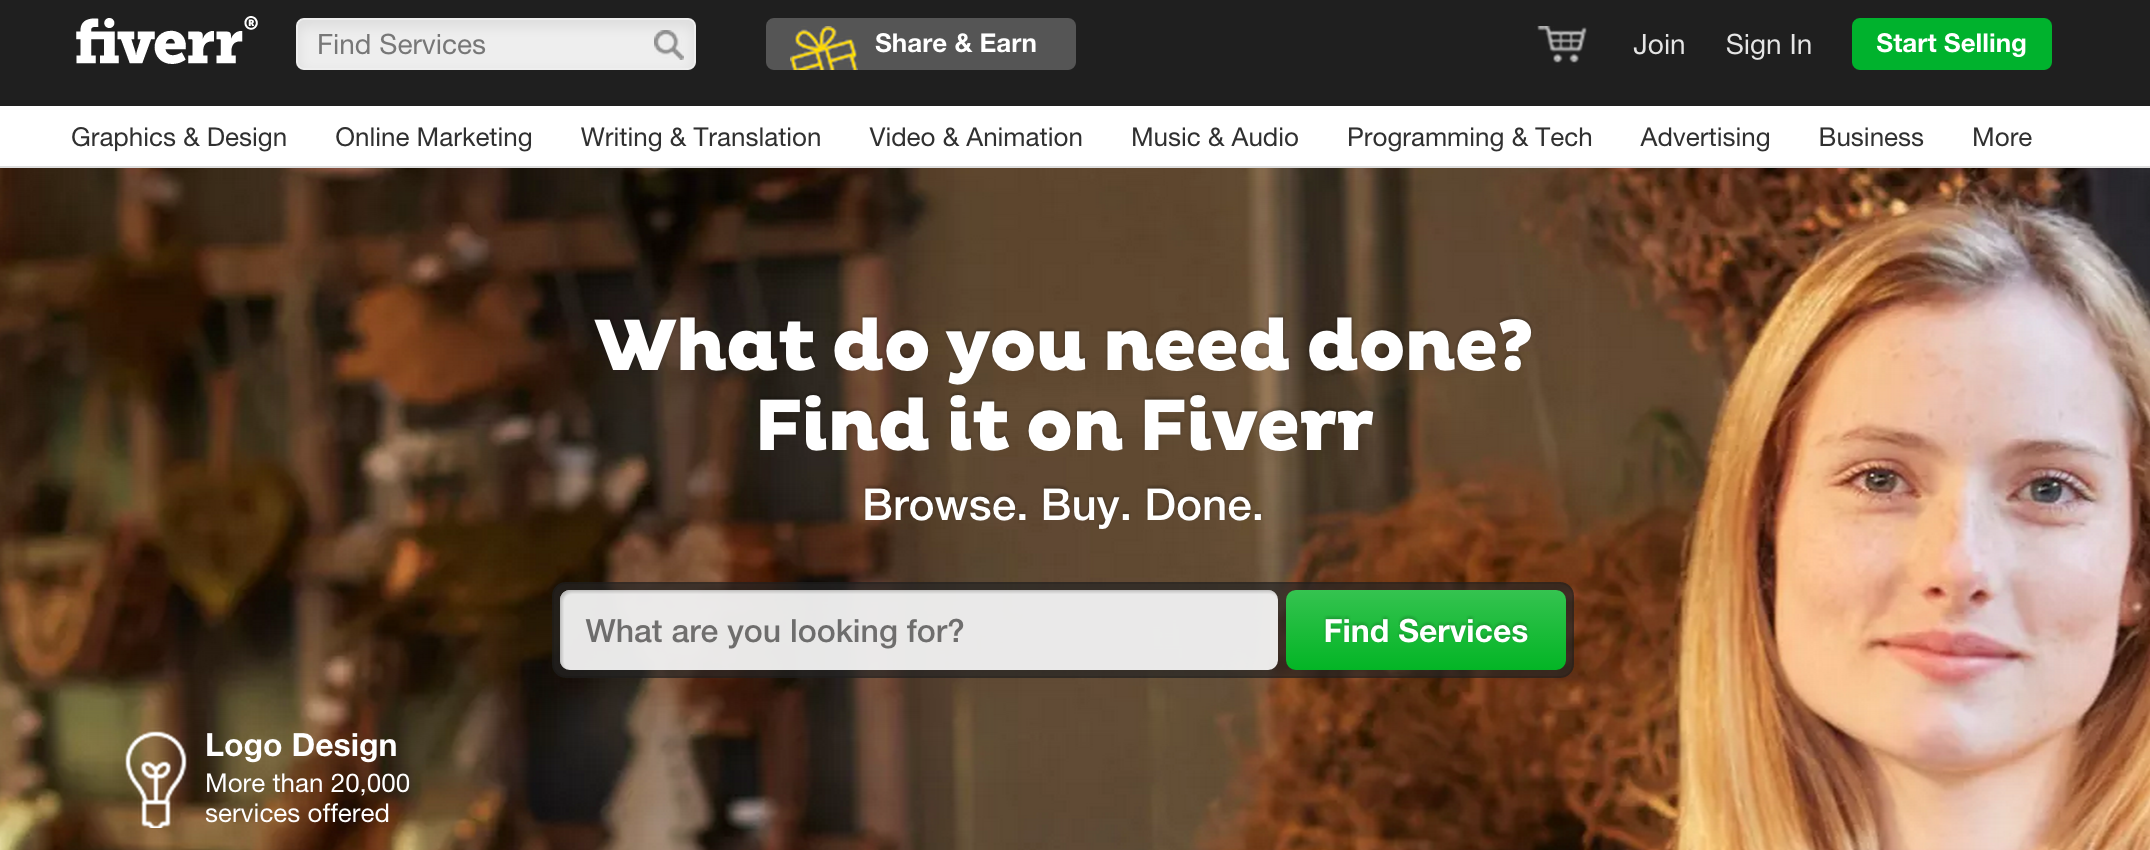 Using Fiverr for Internet Marketing